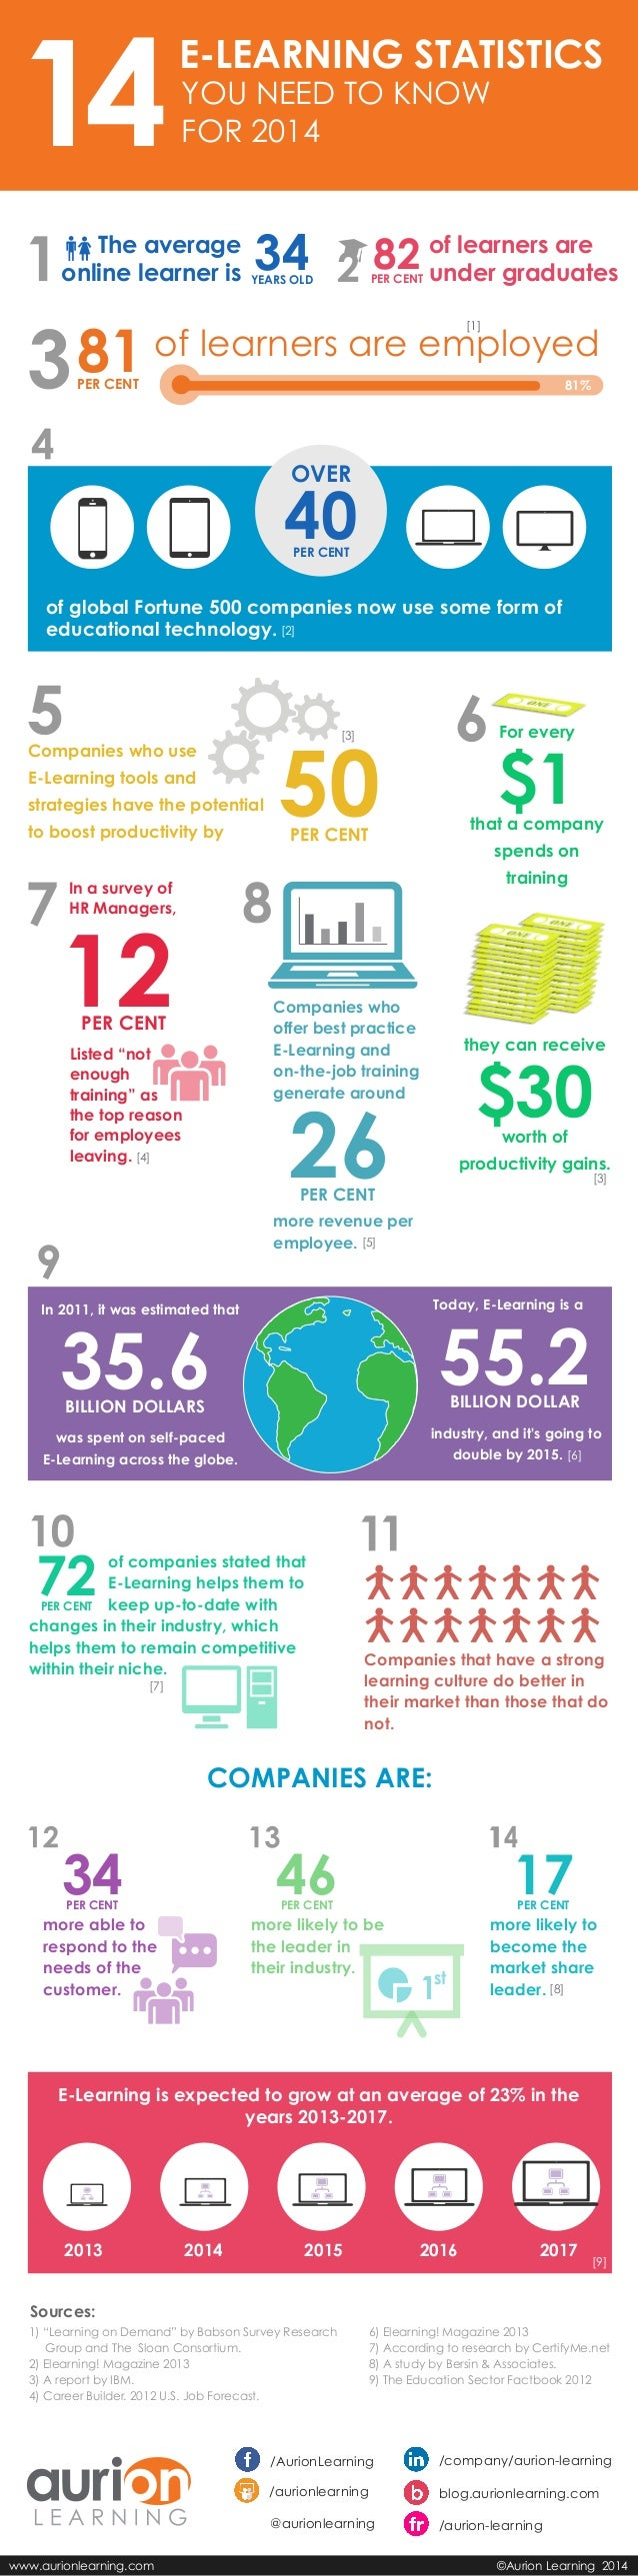 E-LEARNING STATISTICS YOU NEED TO KNOW FOR 2014  The average online learner is  34  82 of learners are under graduates  PE...